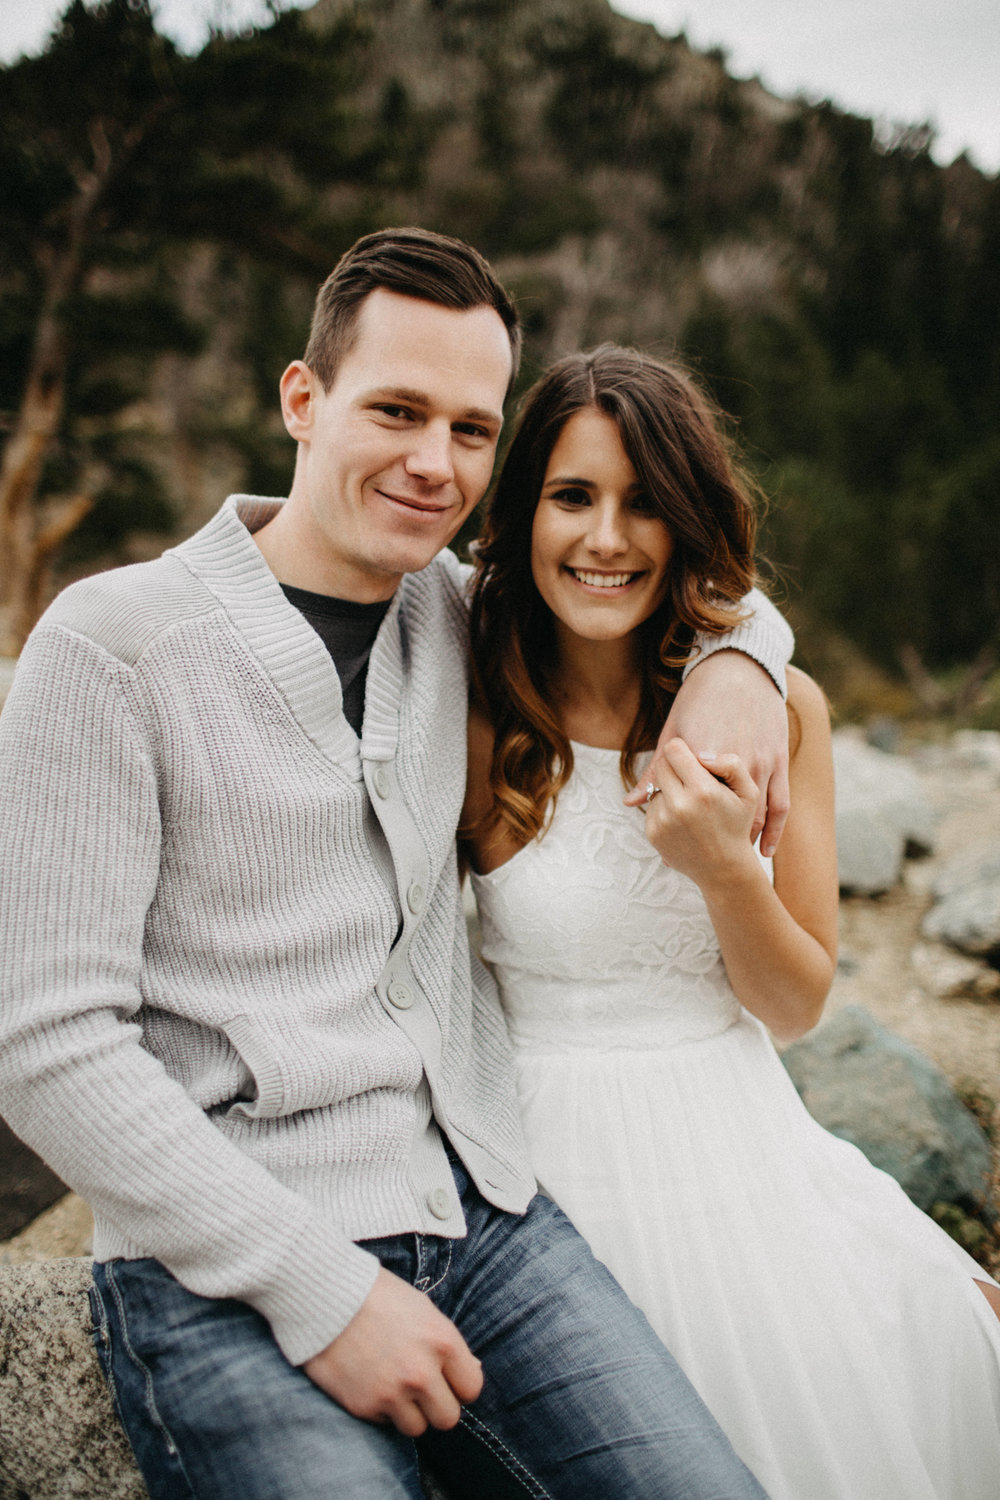 Authentic Engagement Photography in Denver, Colorado